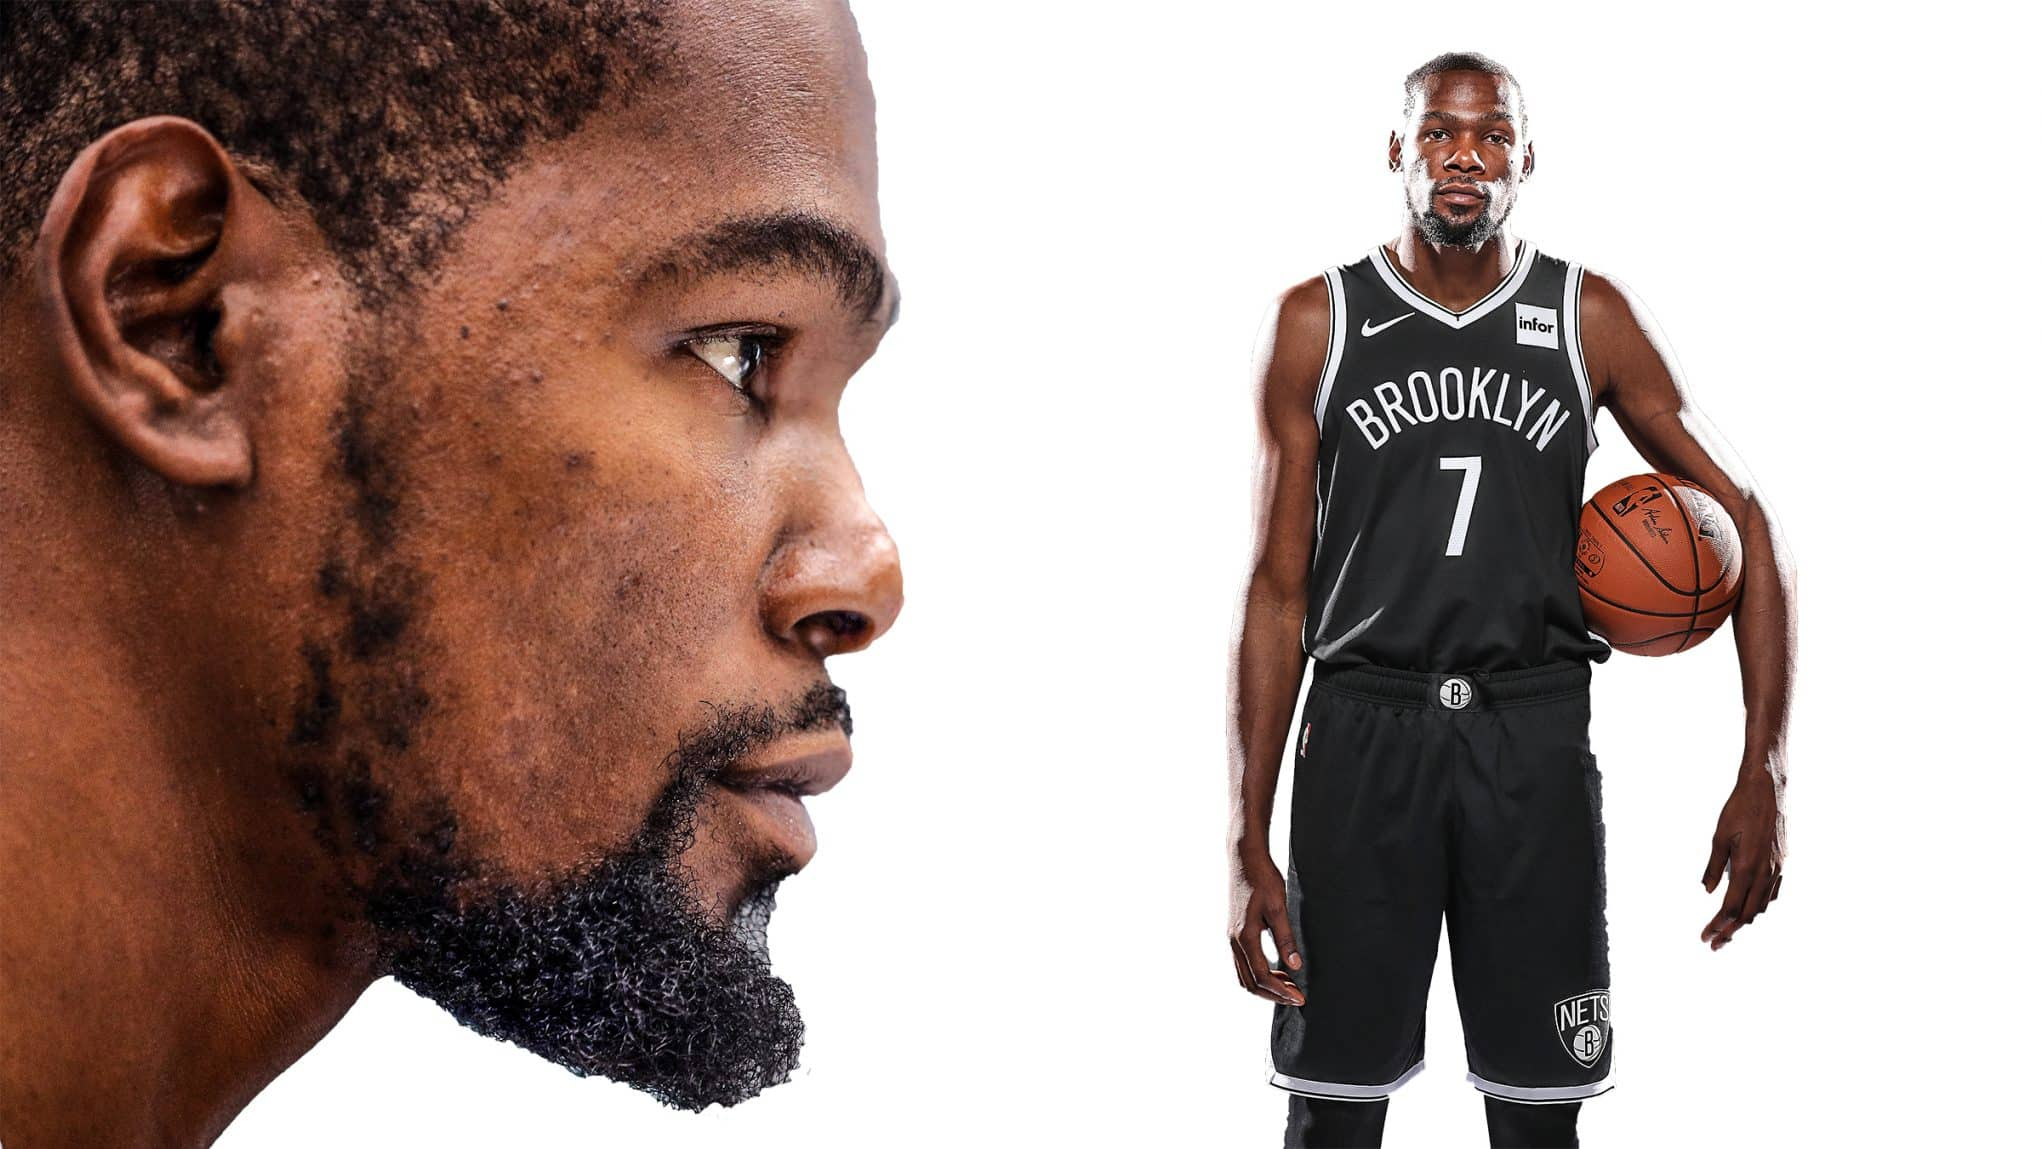 Kevin Durant Is Right About The Mid Range It Opens New Doors For The Brooklyn Nets